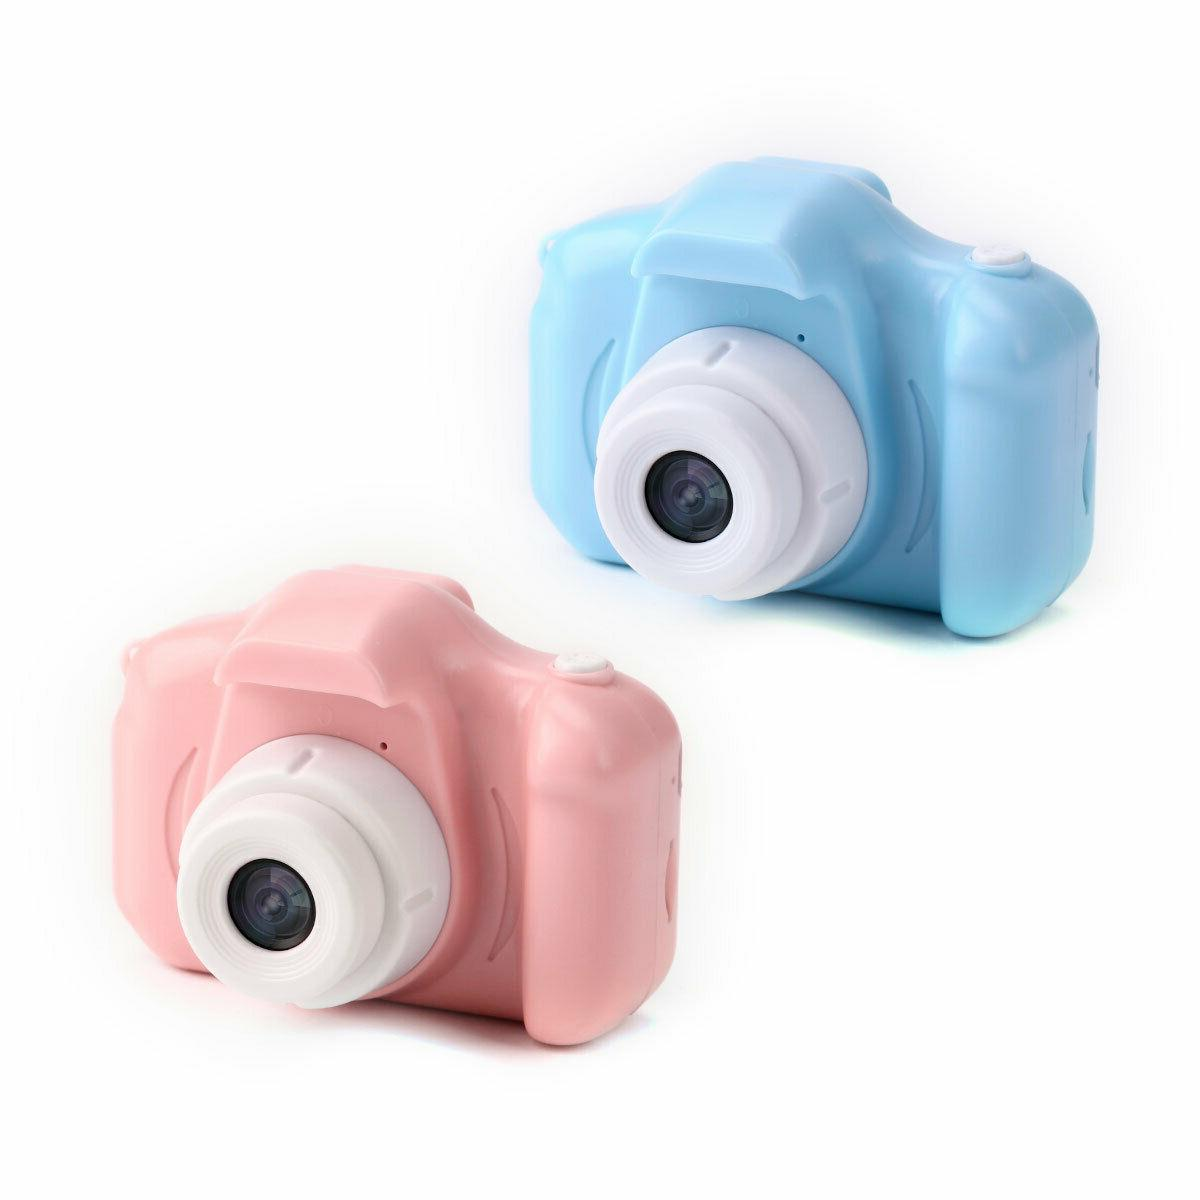 1080P Camera Cute Camcorder Video Cam Recorder for Kids Gift